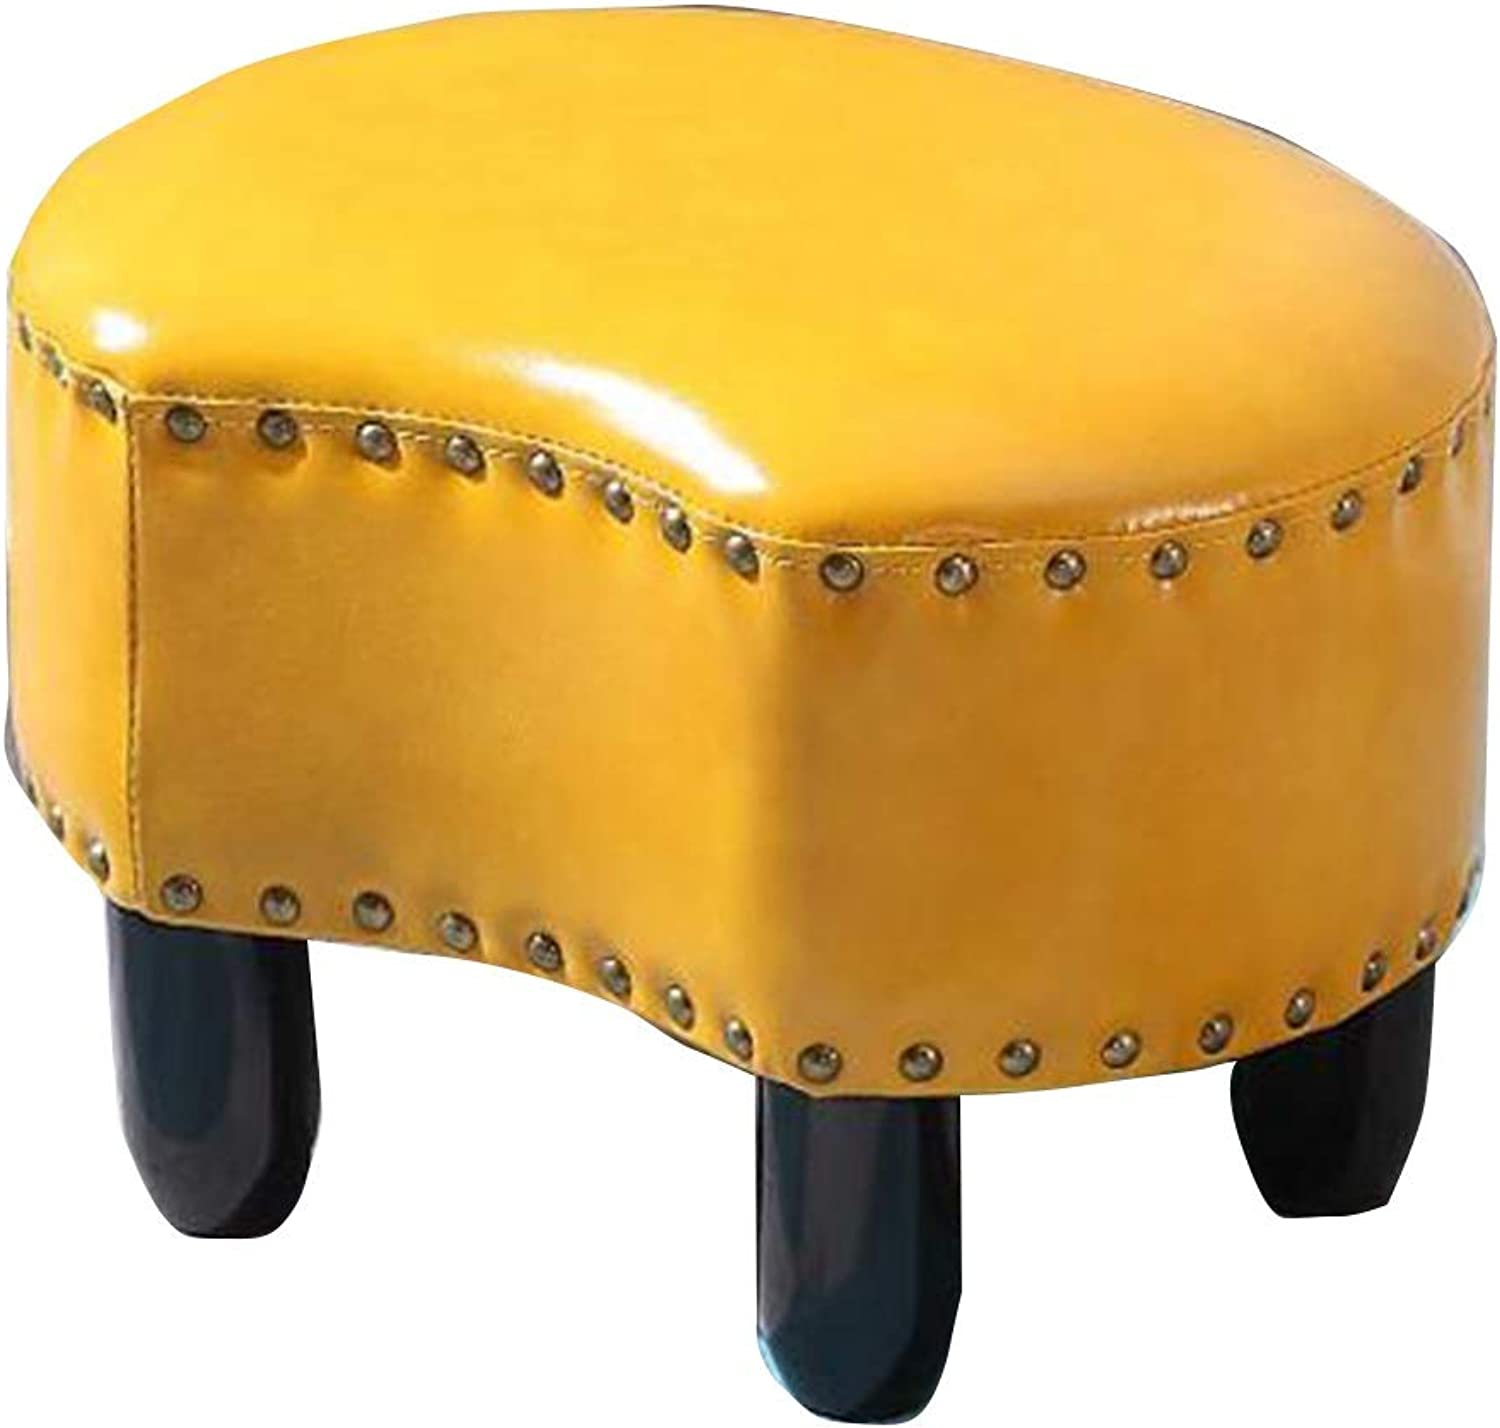 Pouffes and Footstools Home Change shoes Low Stool Solid Wood Feet Crescent Shape PU Retro , 7 colors ( color   Yellow , Size   42X31X28CM )